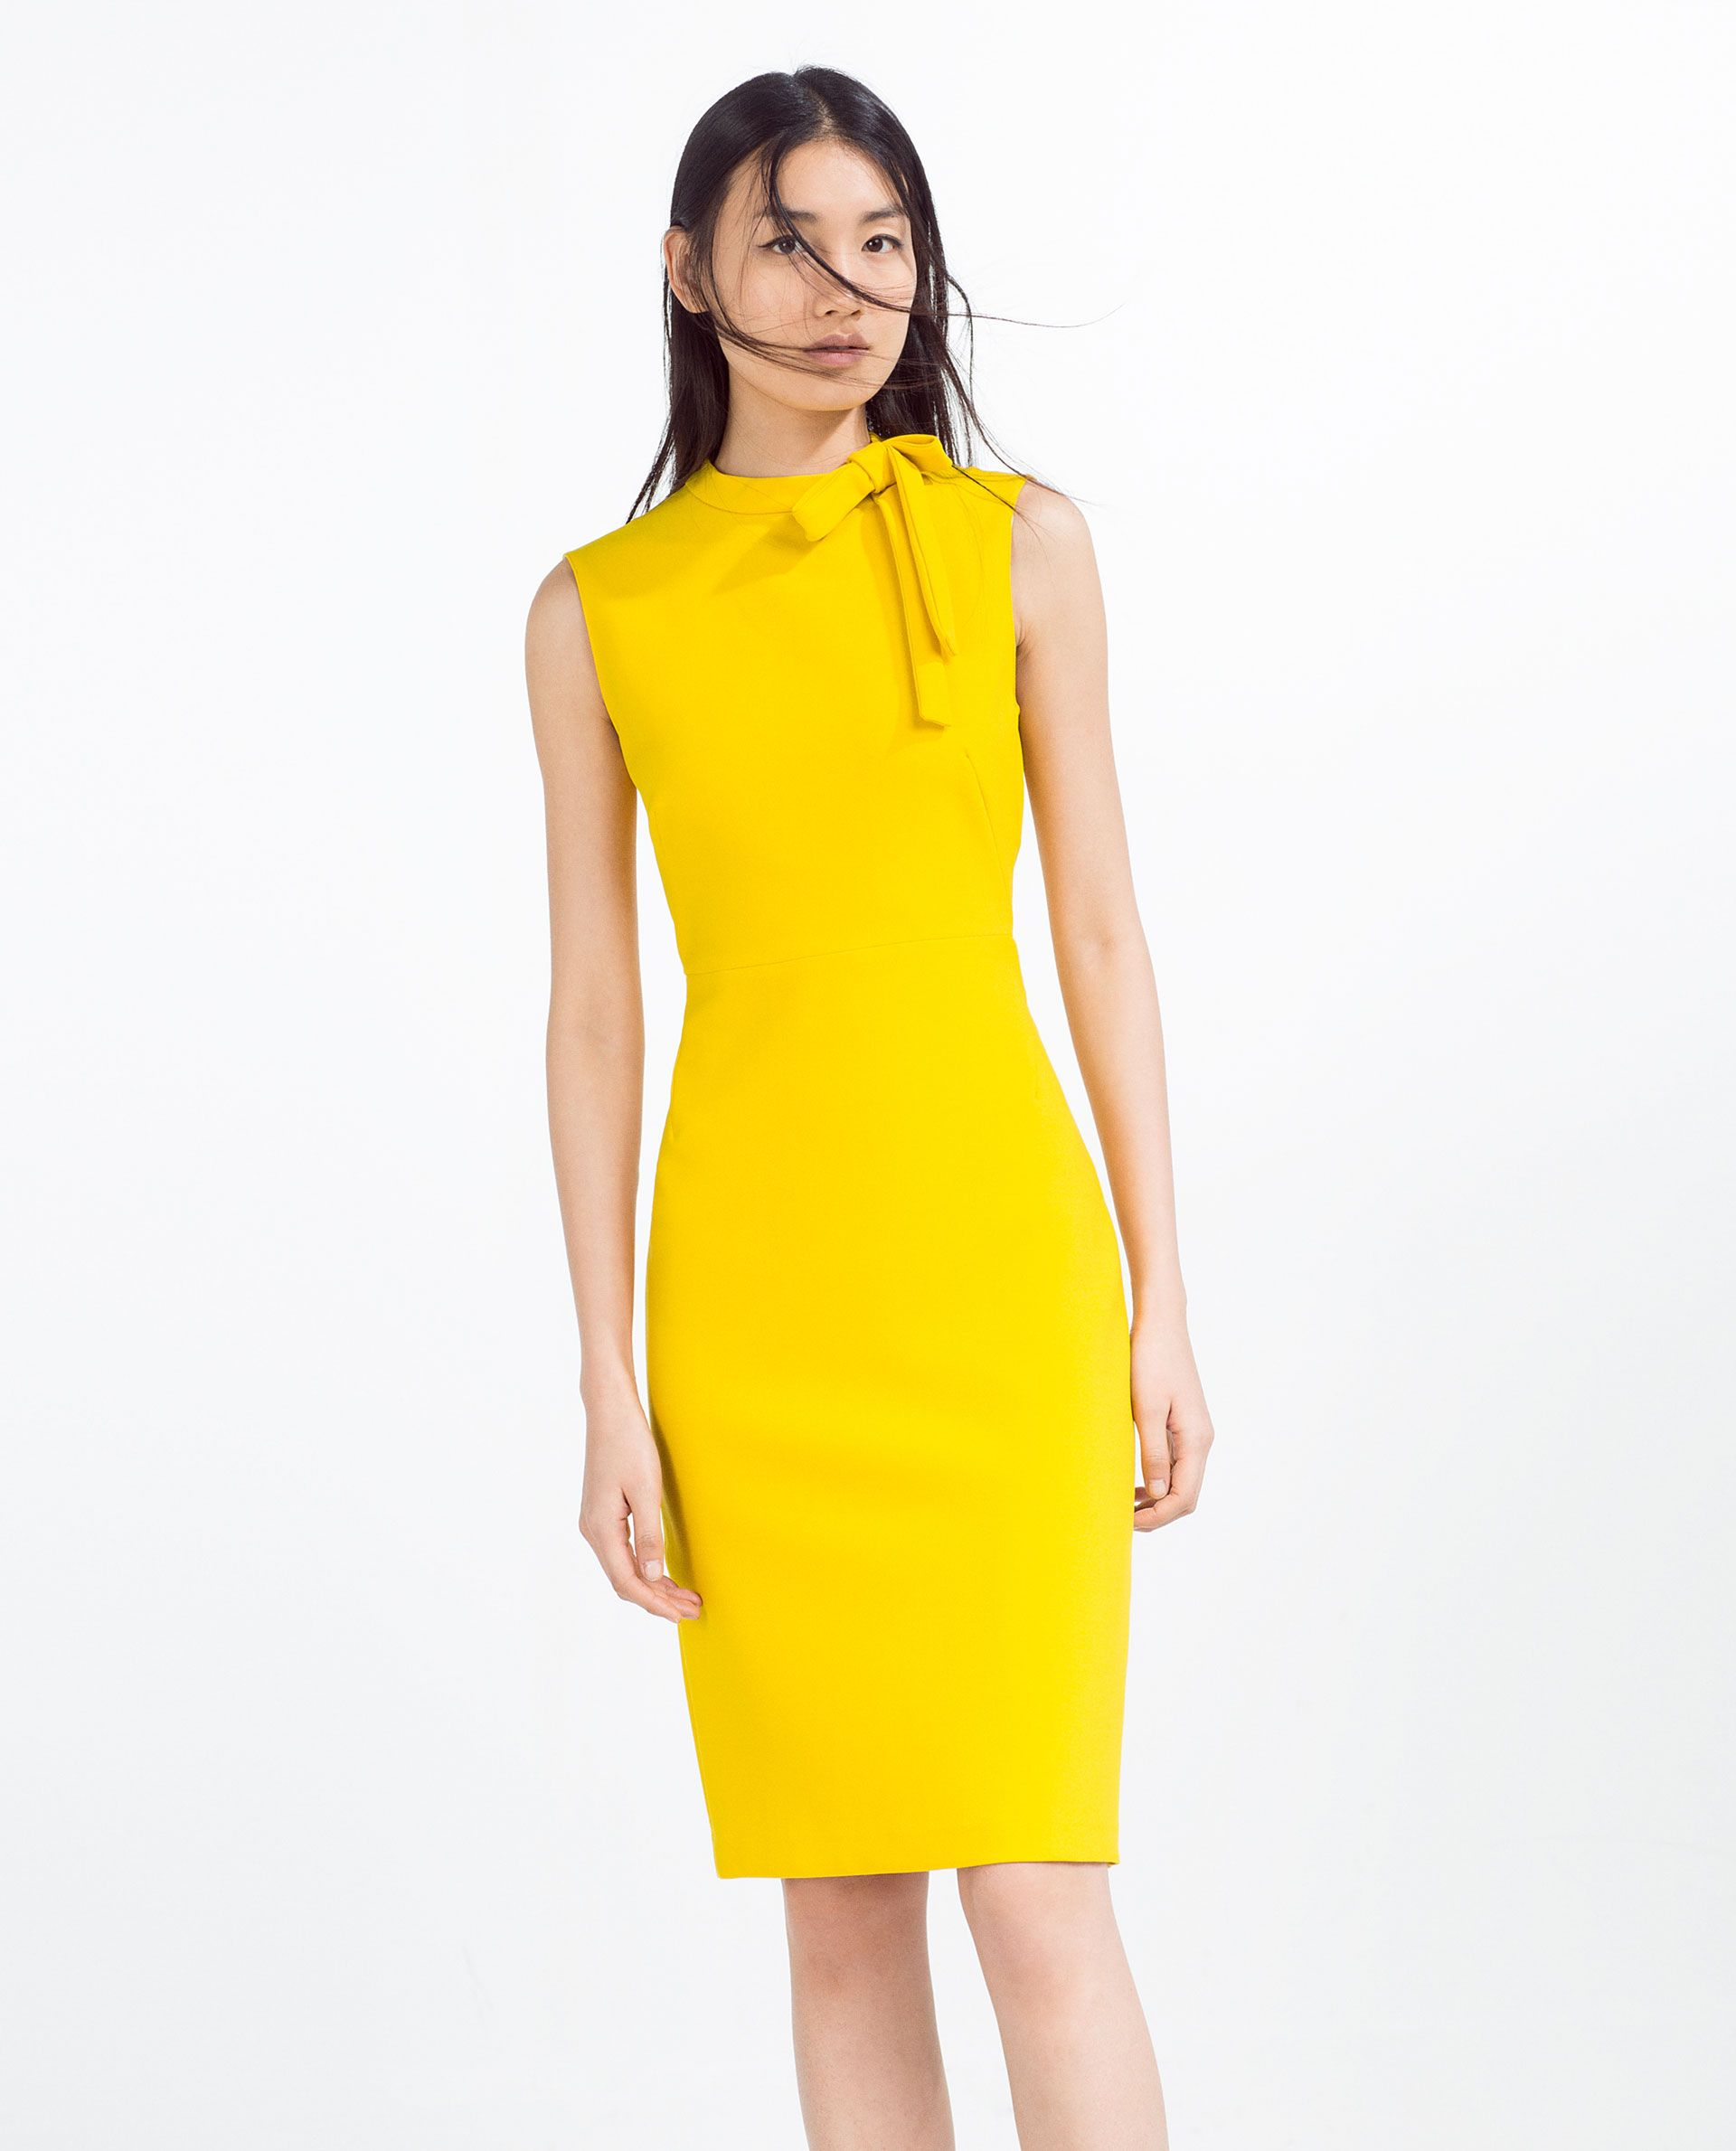 Tube dress view all woman new in zara spain it aty tube dress view all woman new in zara spain ombrellifo Image collections